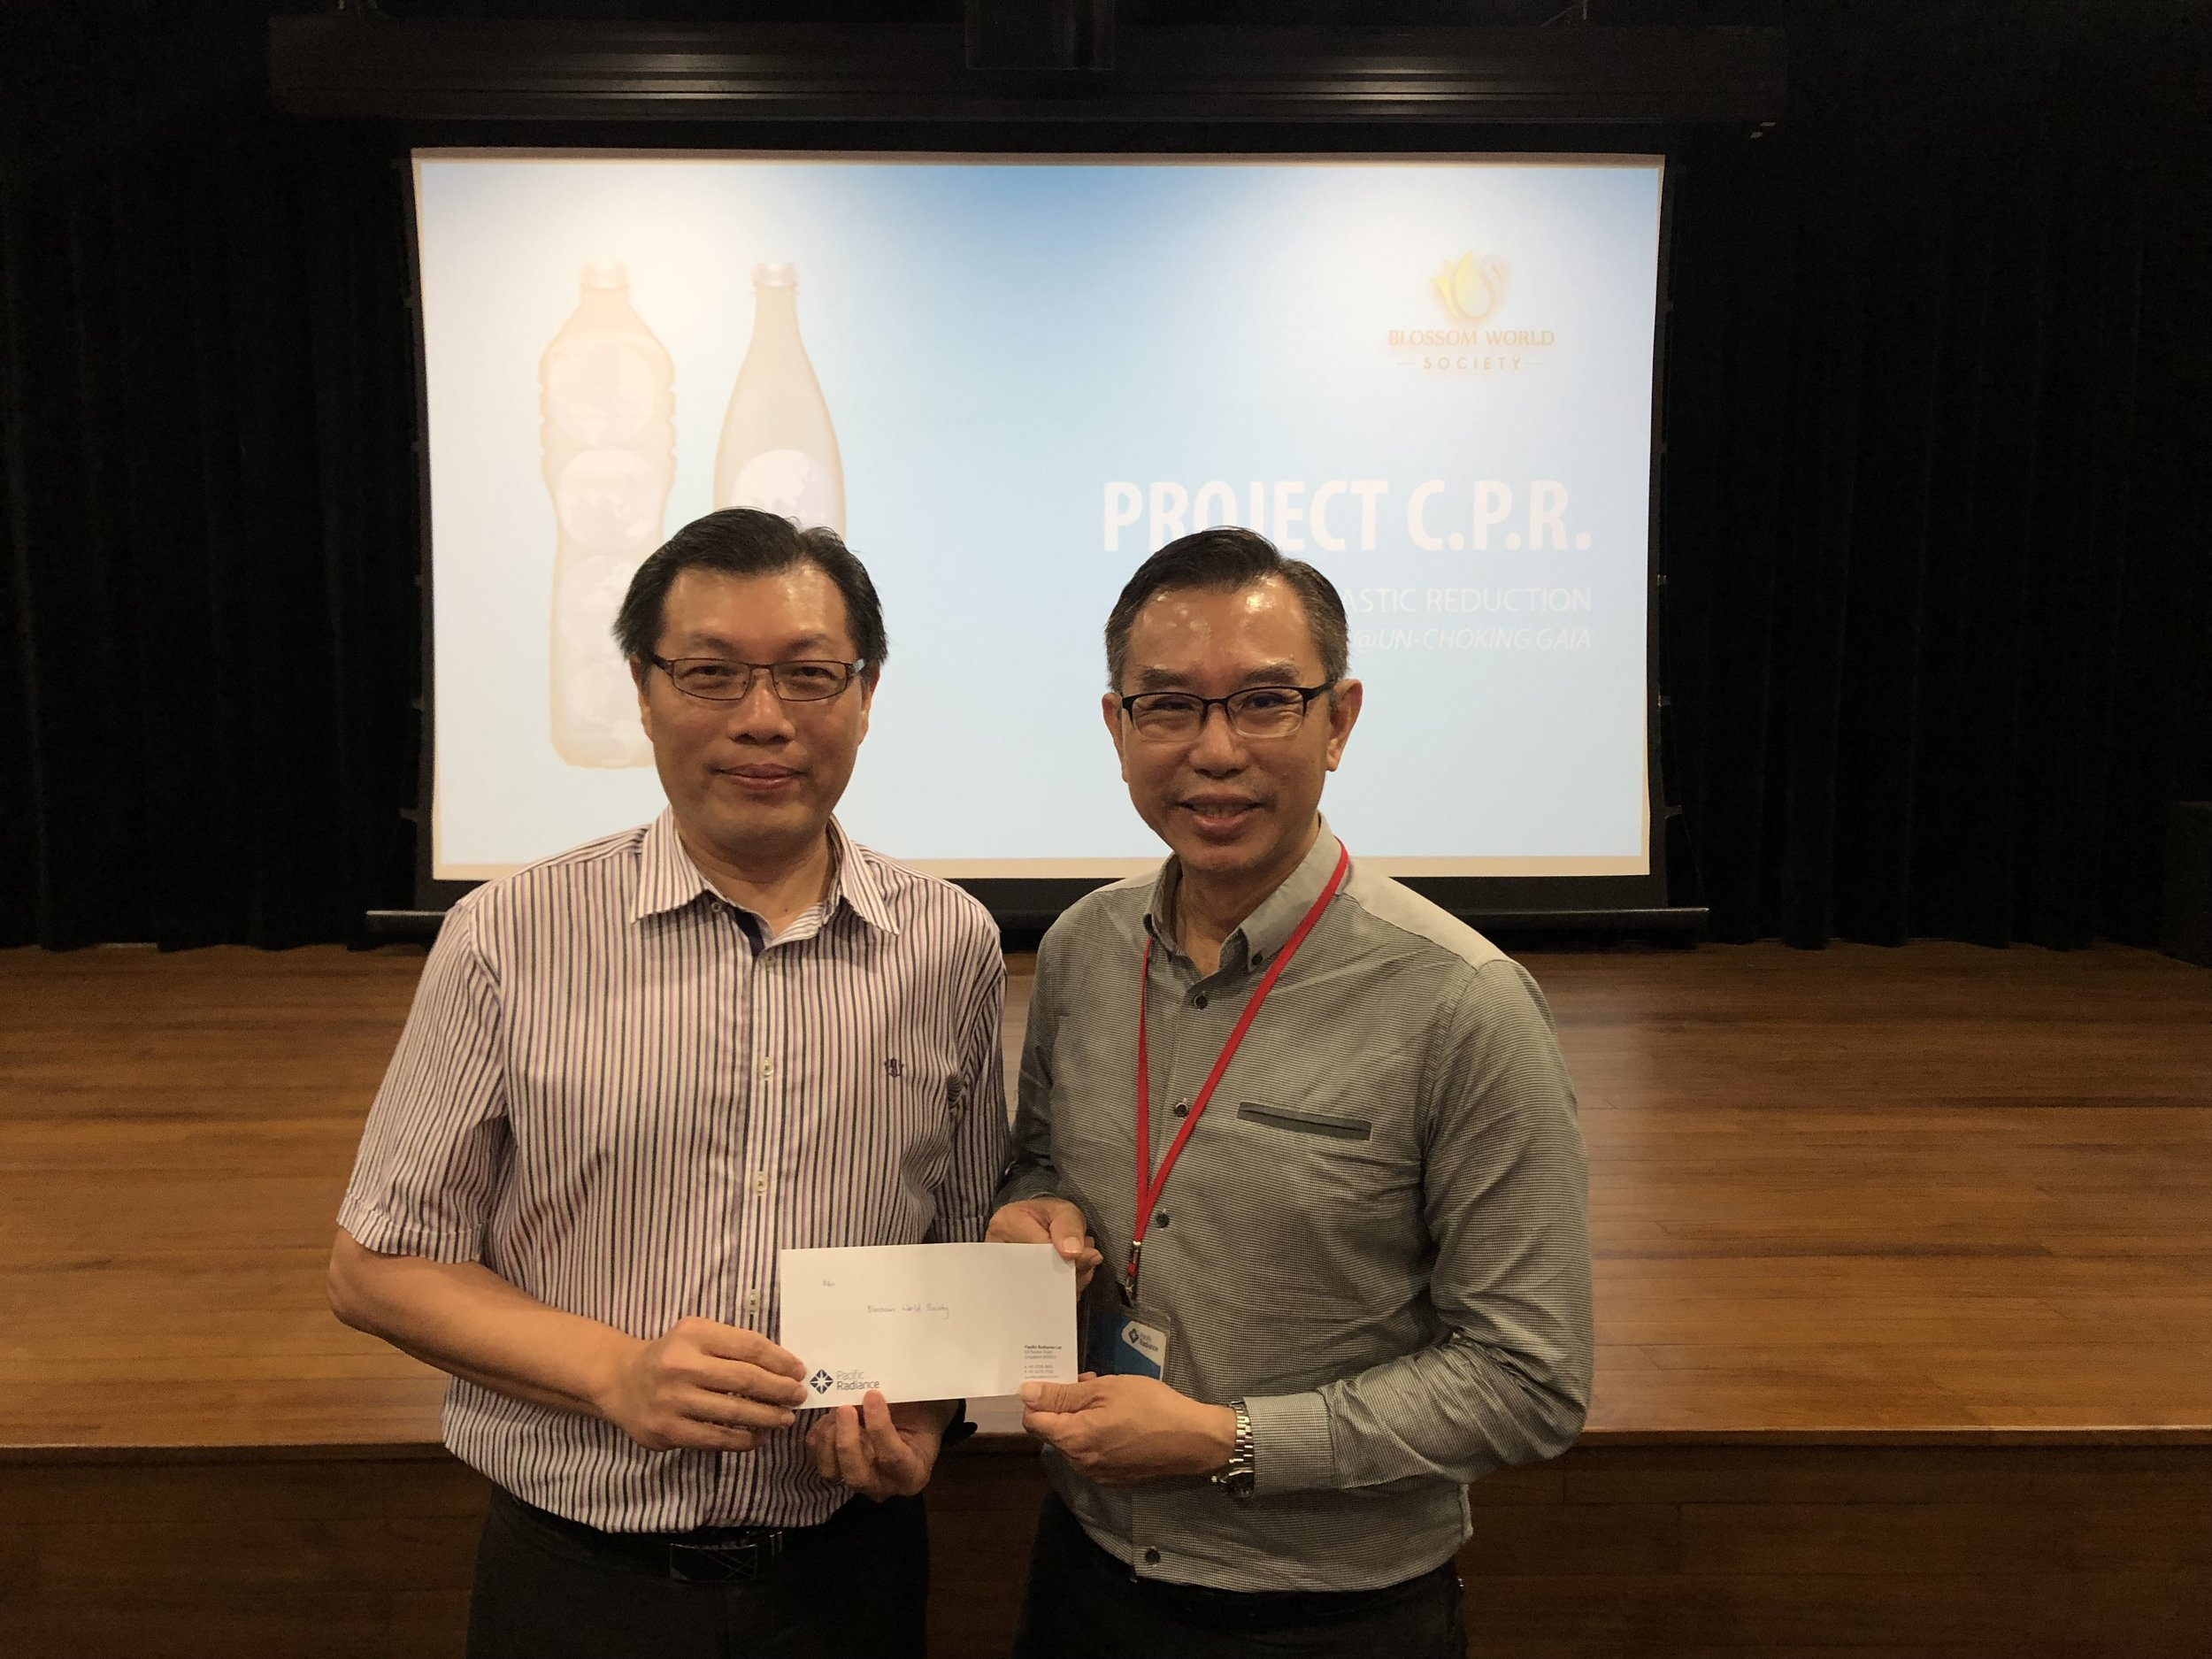 Presentation of a cheque, graciously by Pacific Radiance to Blossom World Society after the sharing done by Yu Ling.